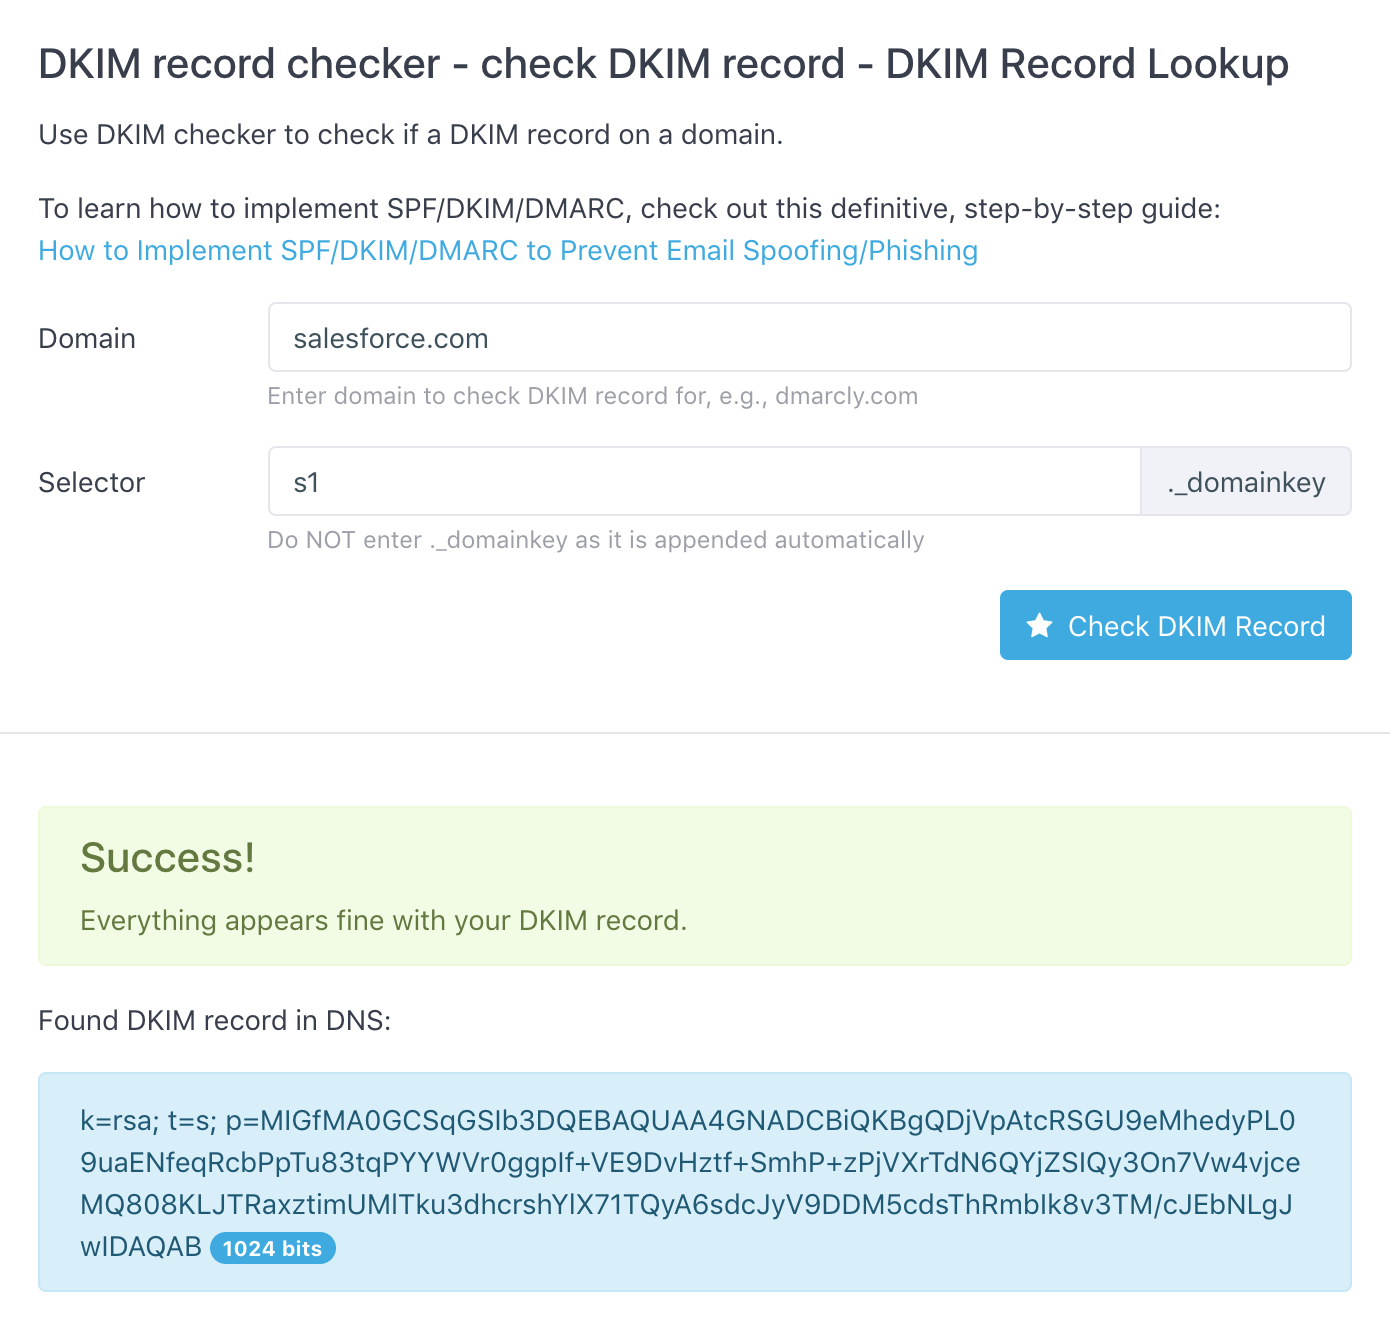 Find DKIM record by DKIM selector on domain